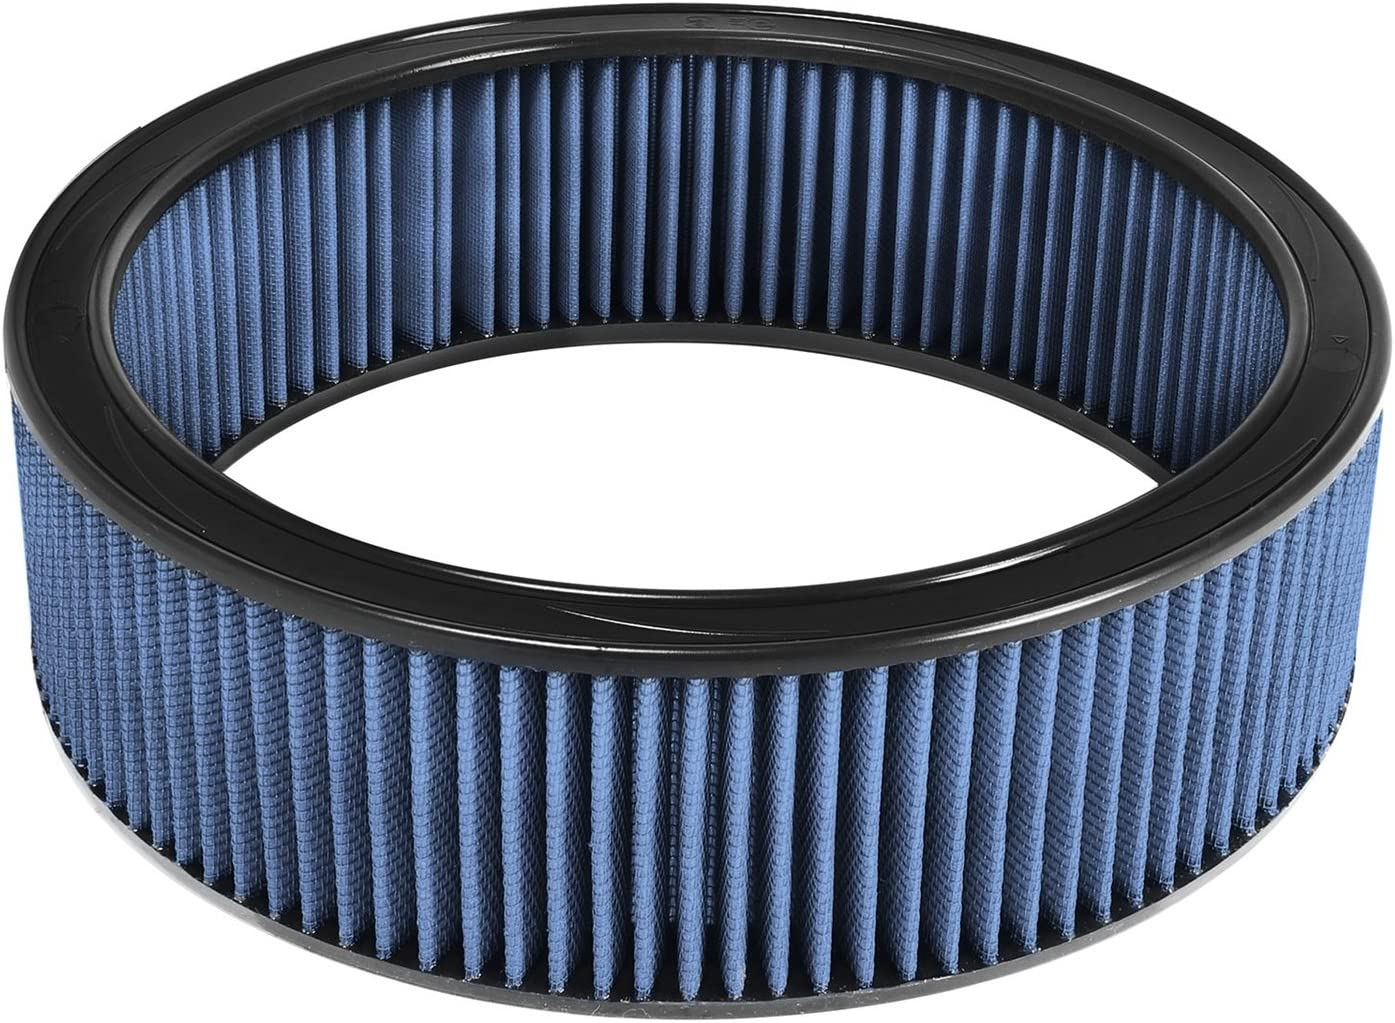 aFe Power Inventory cleanup selling sale 10-10013 MagnumFLOW Pro latest Filter Air 5R OE Replacement